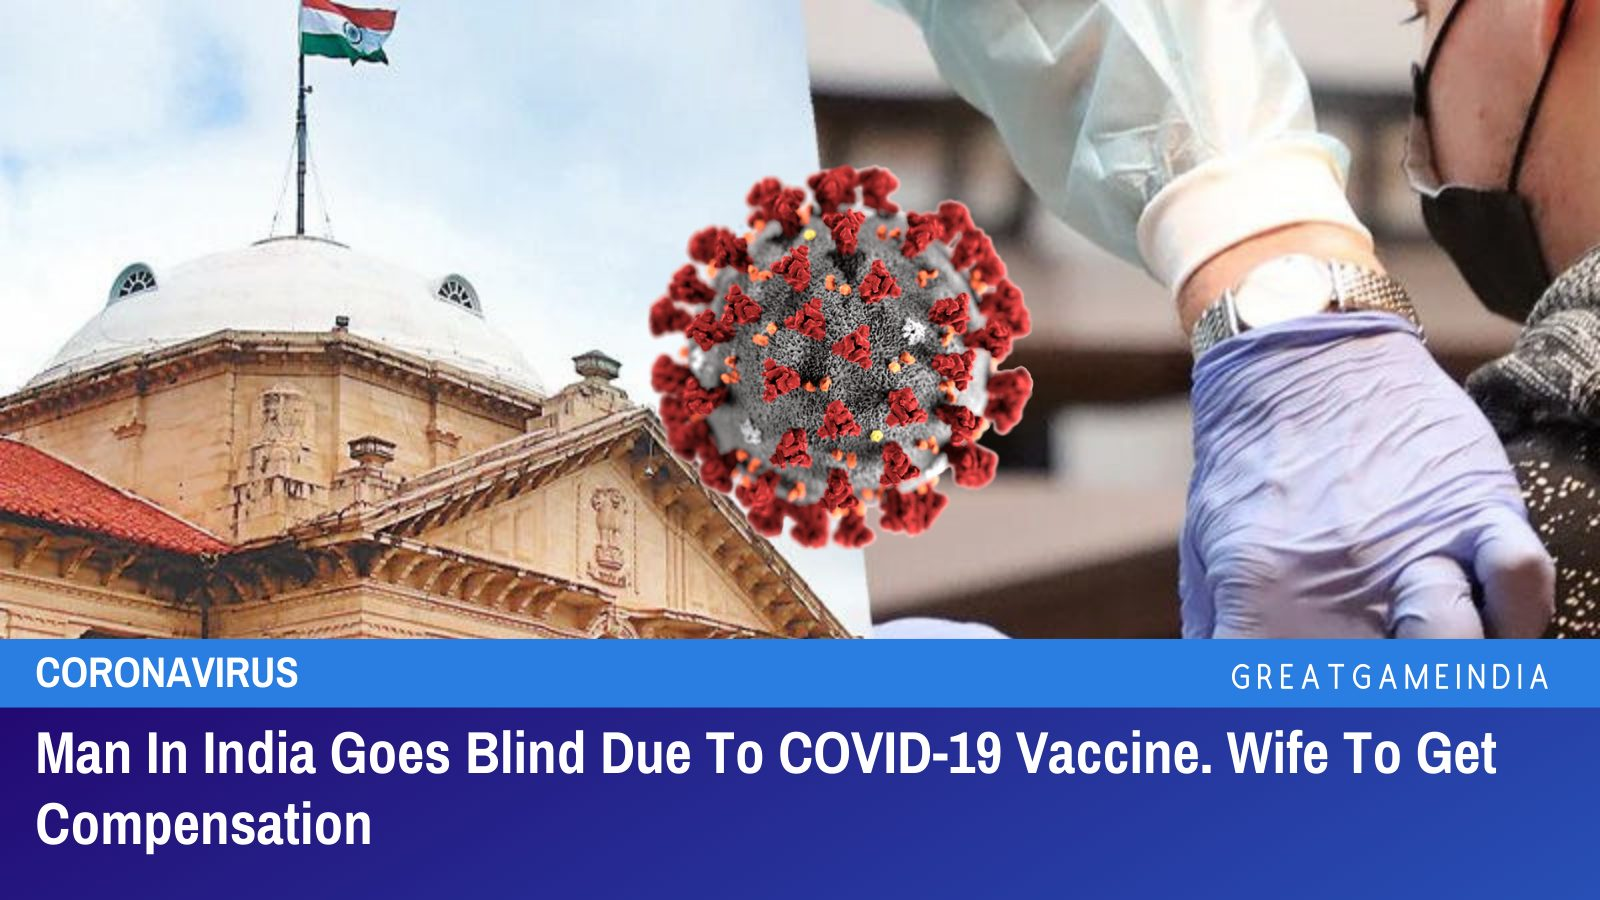 Man In India Goes Blind Due To COVID-19 Vaccine. Wife To Get Compensation